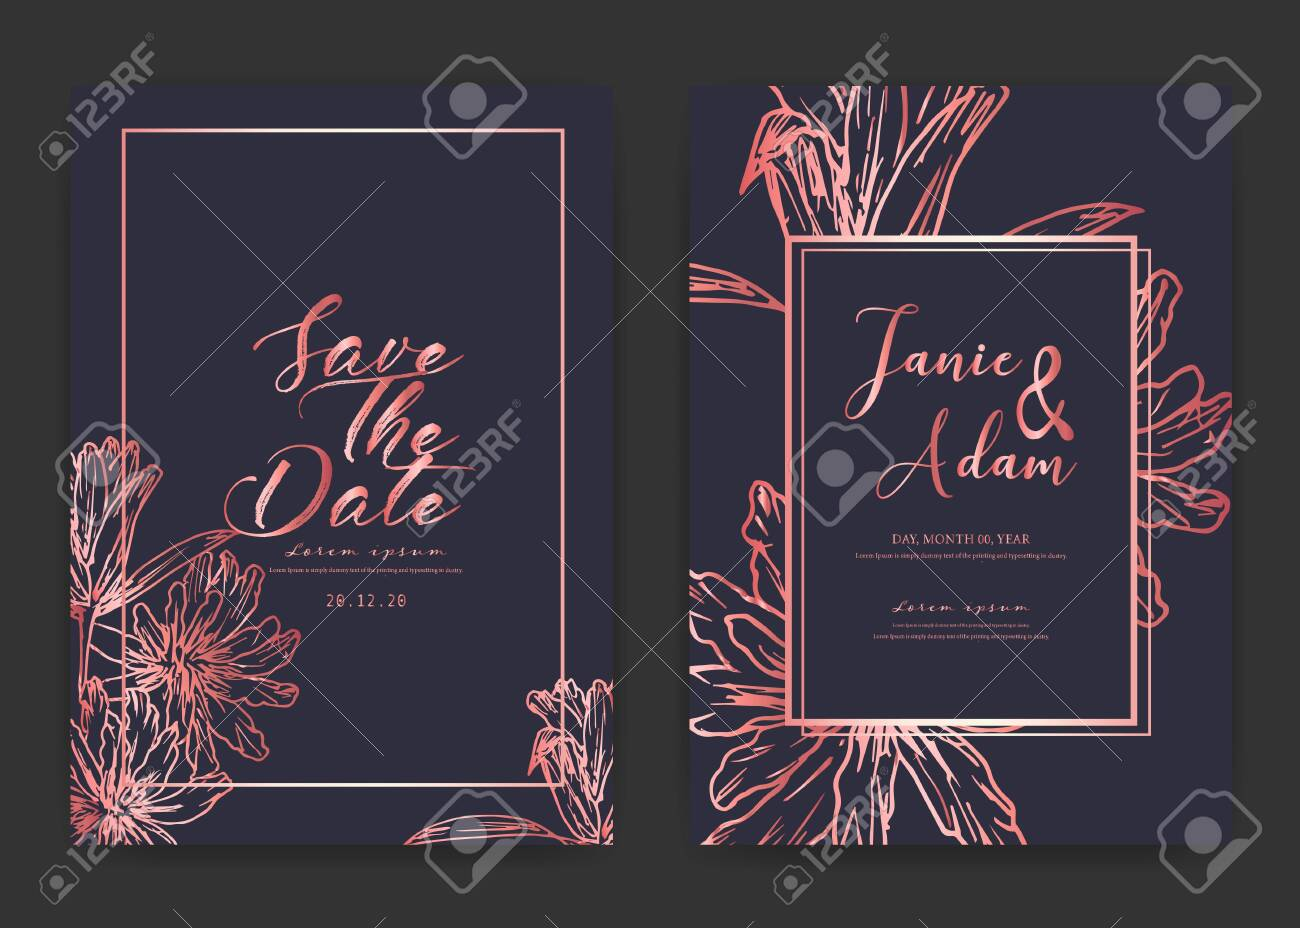 Save The Date Wedding Card. Wedding Invitation Cards With Hand.. Royalty  Free Cliparts, Vectors, And Stock Illustration. Image 127123020.